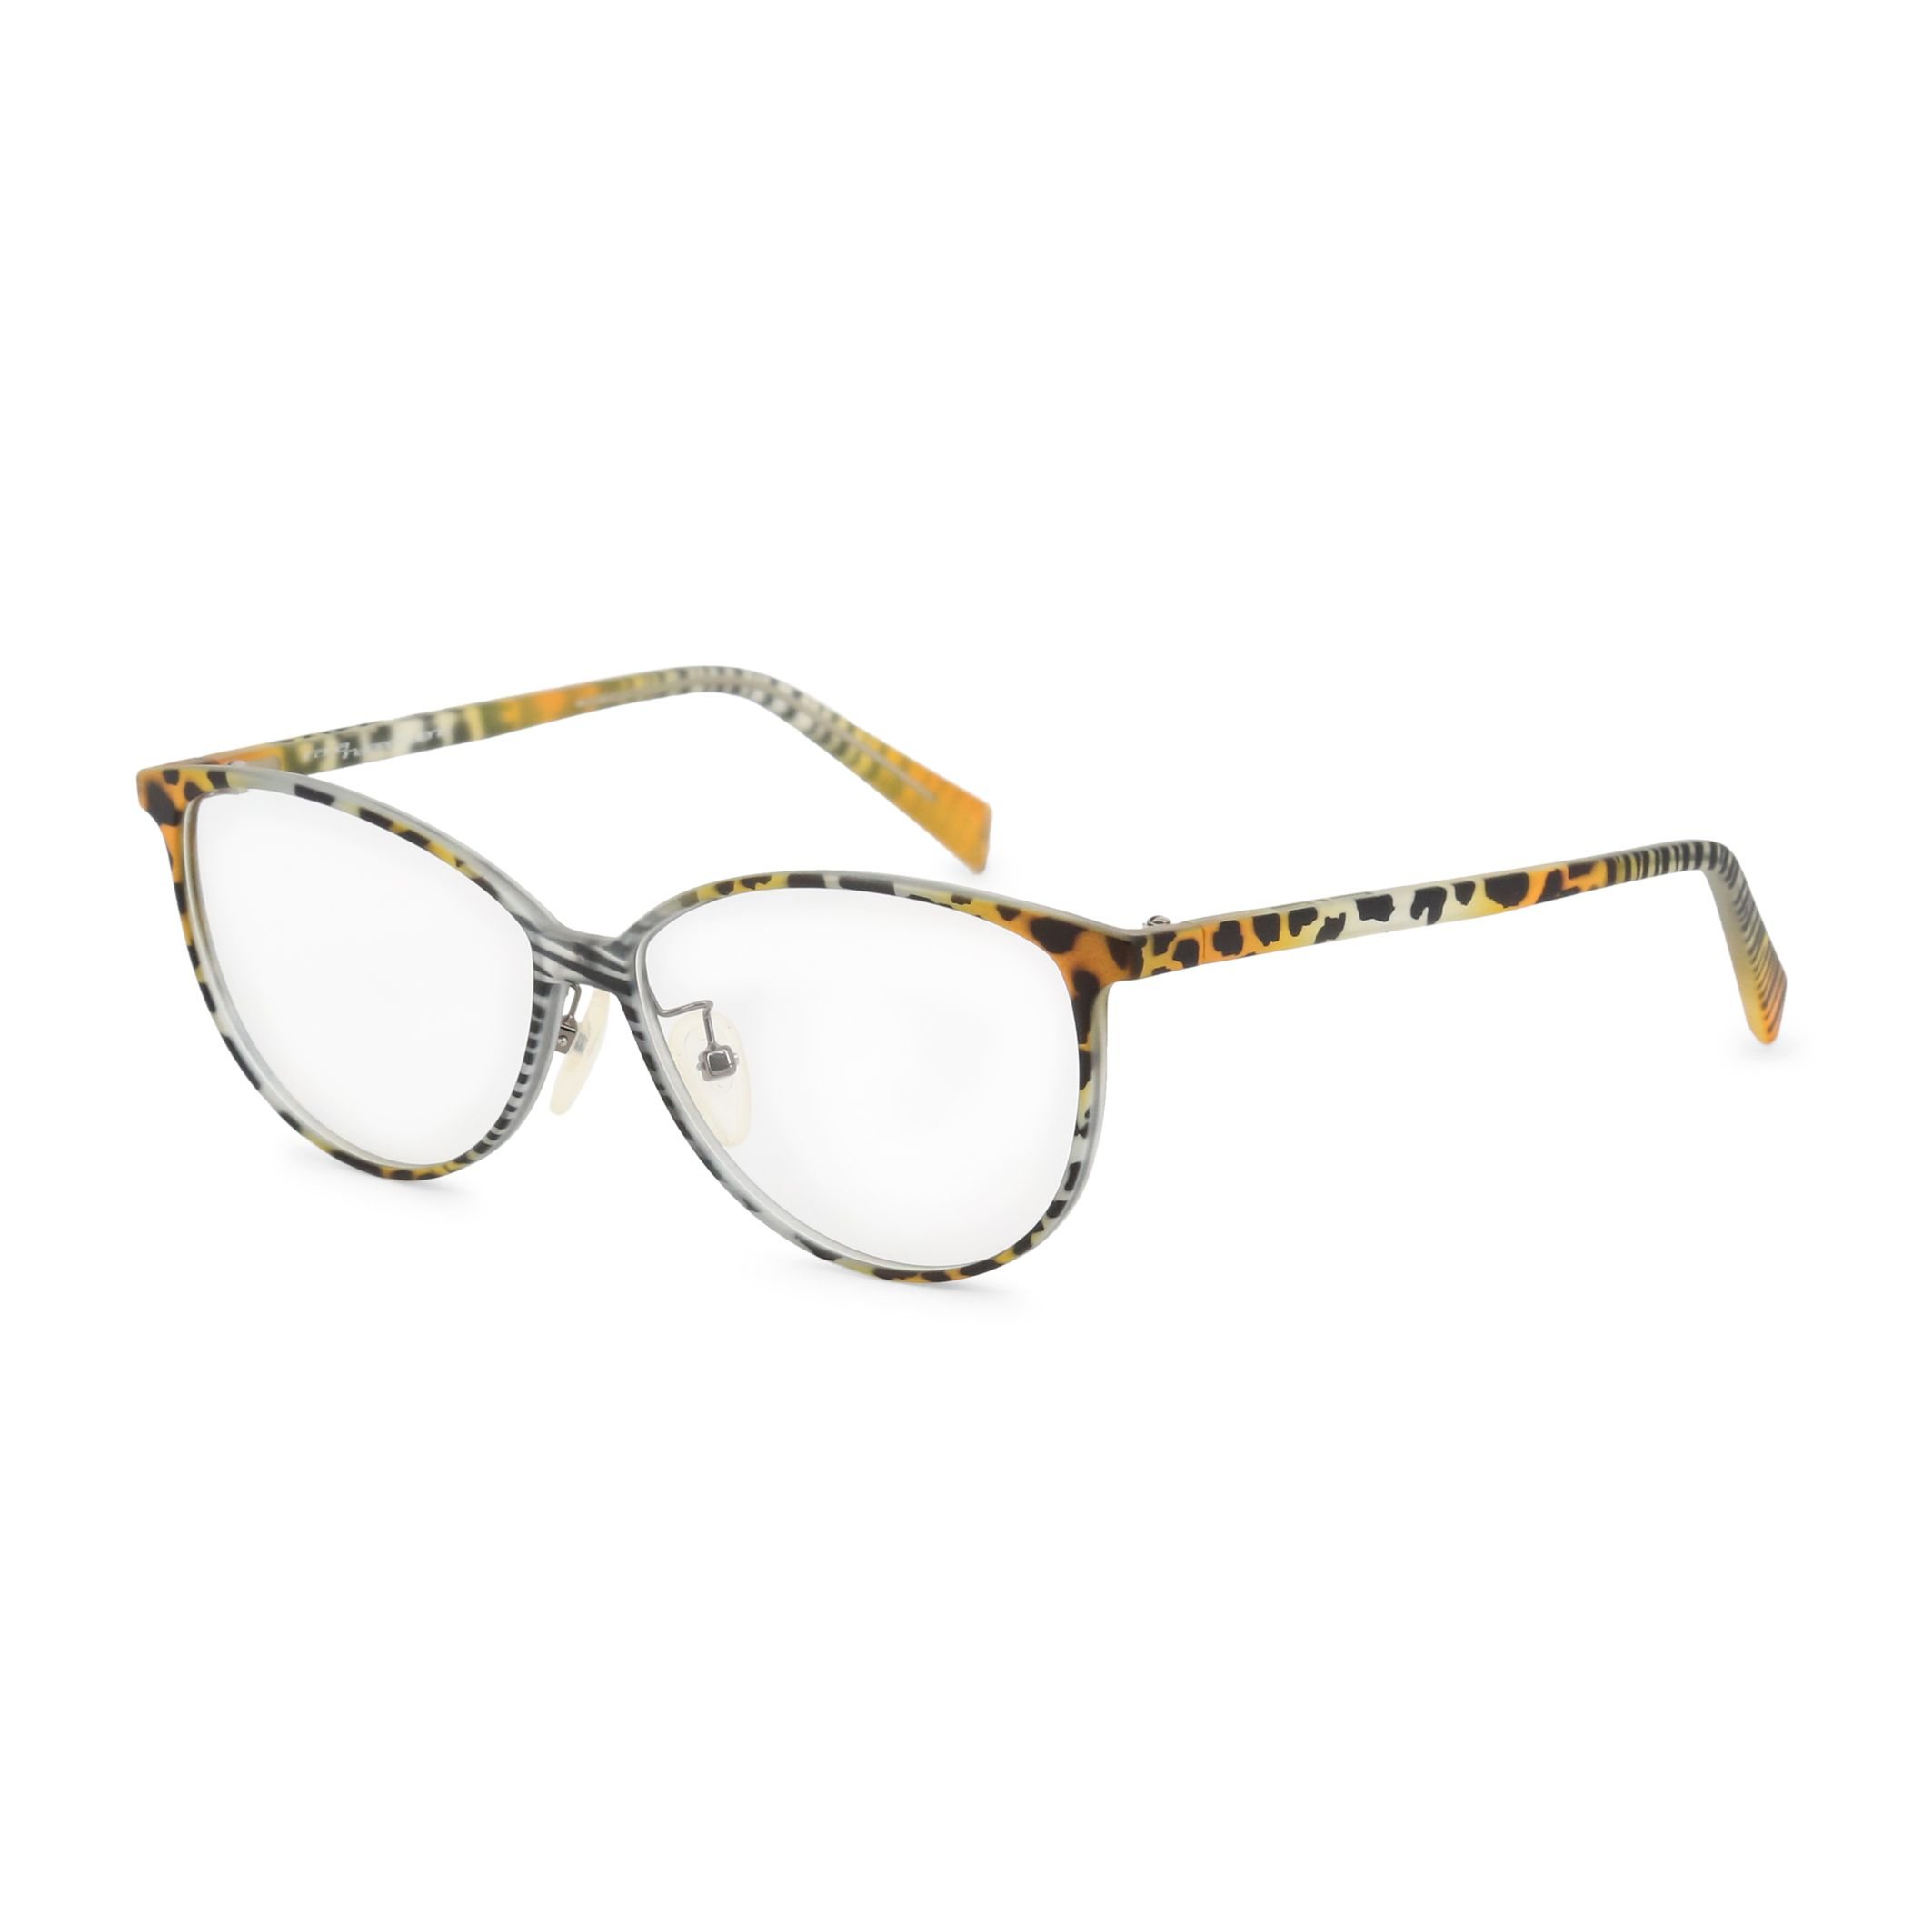 Lunettes Italia Independent – 5570A